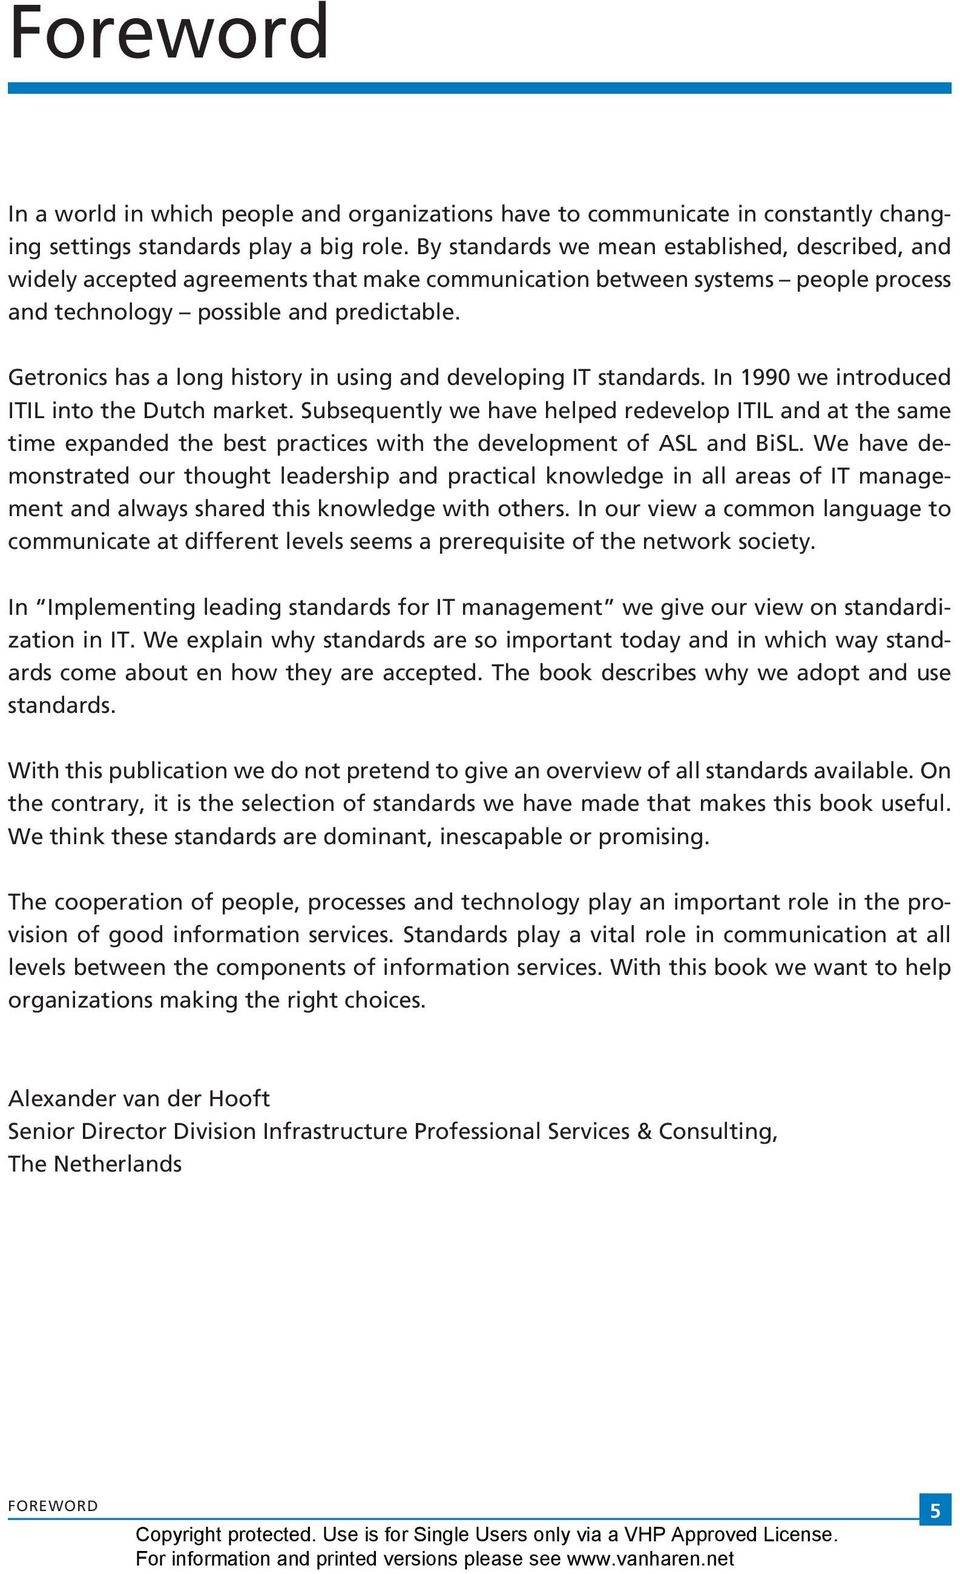 Getronics has a long history in using and developing IT standards. In 1990 we introduced ITIL into the Dutch market.